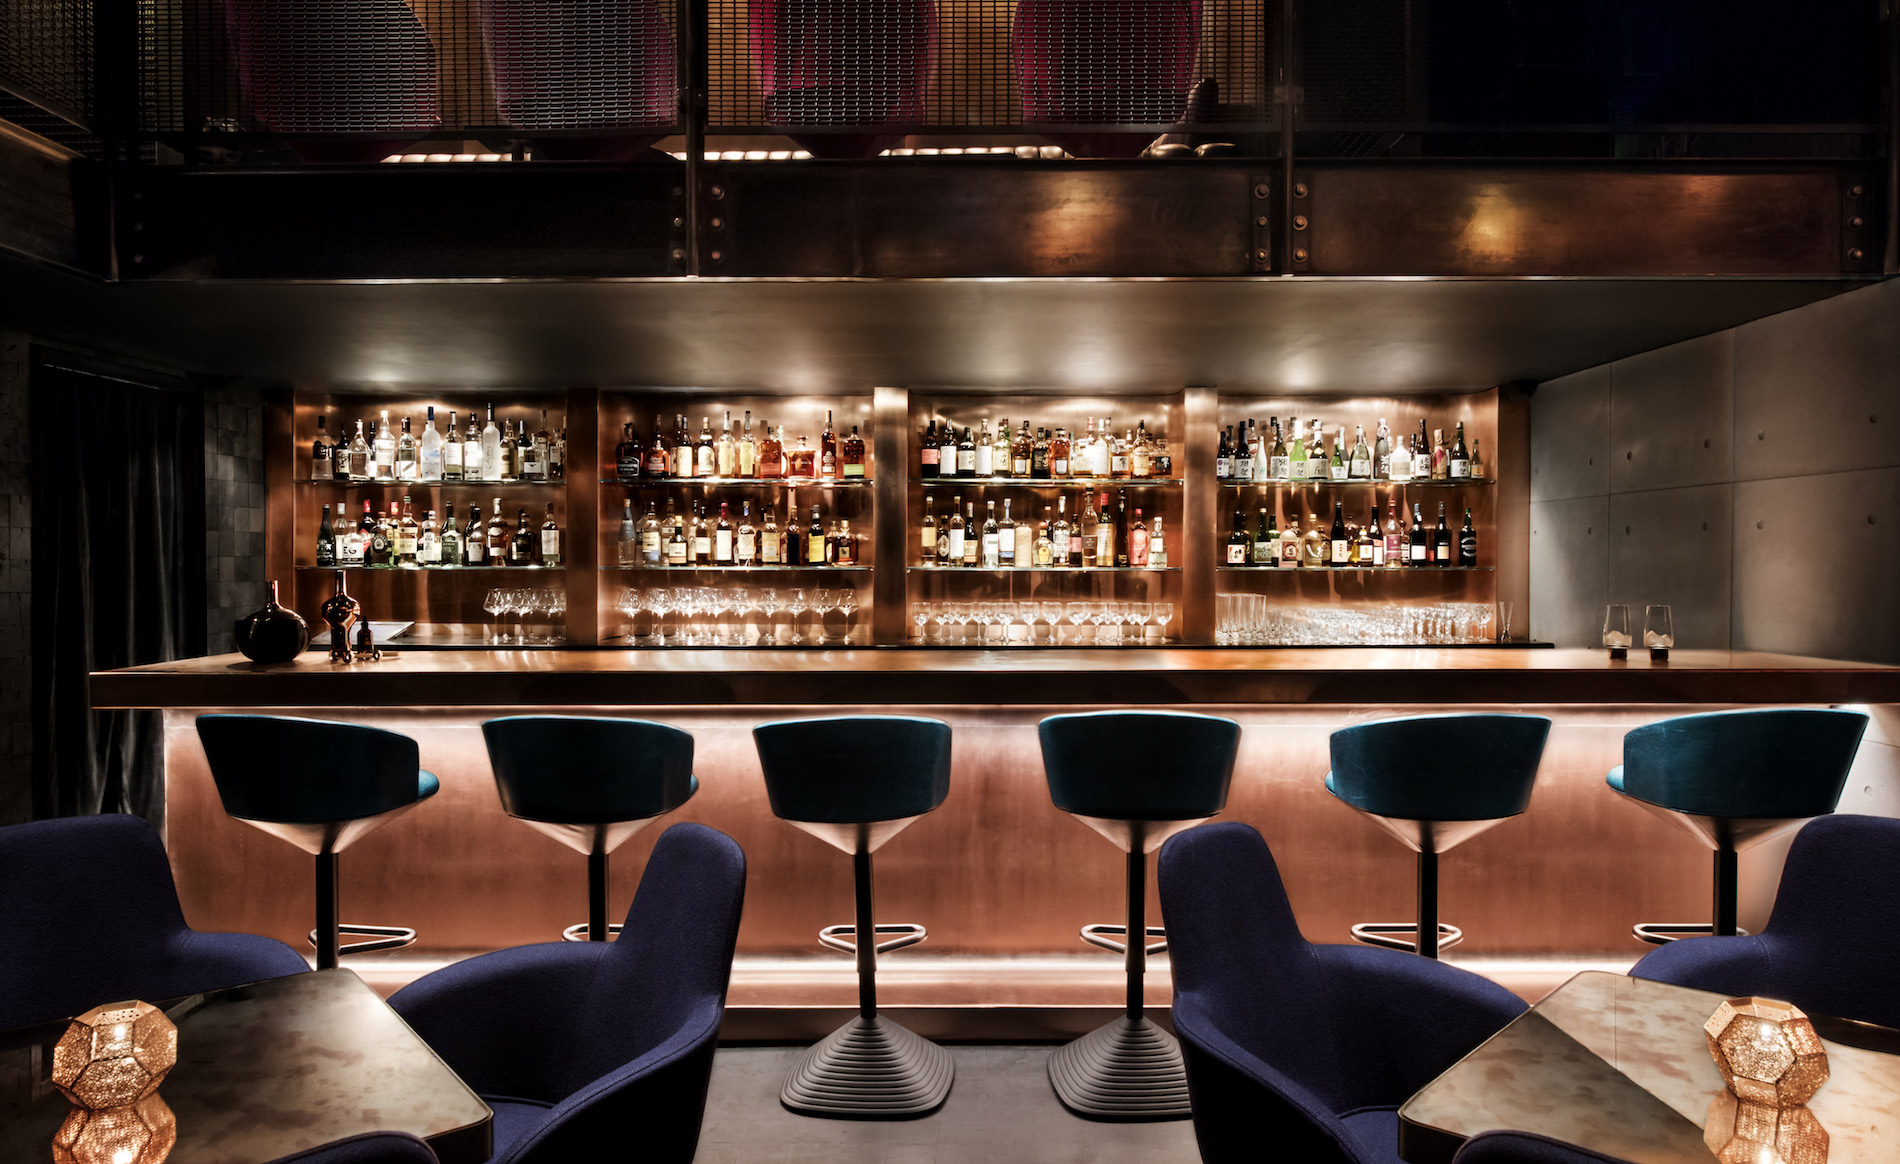 Best designed bar interiors | Wallpaper*